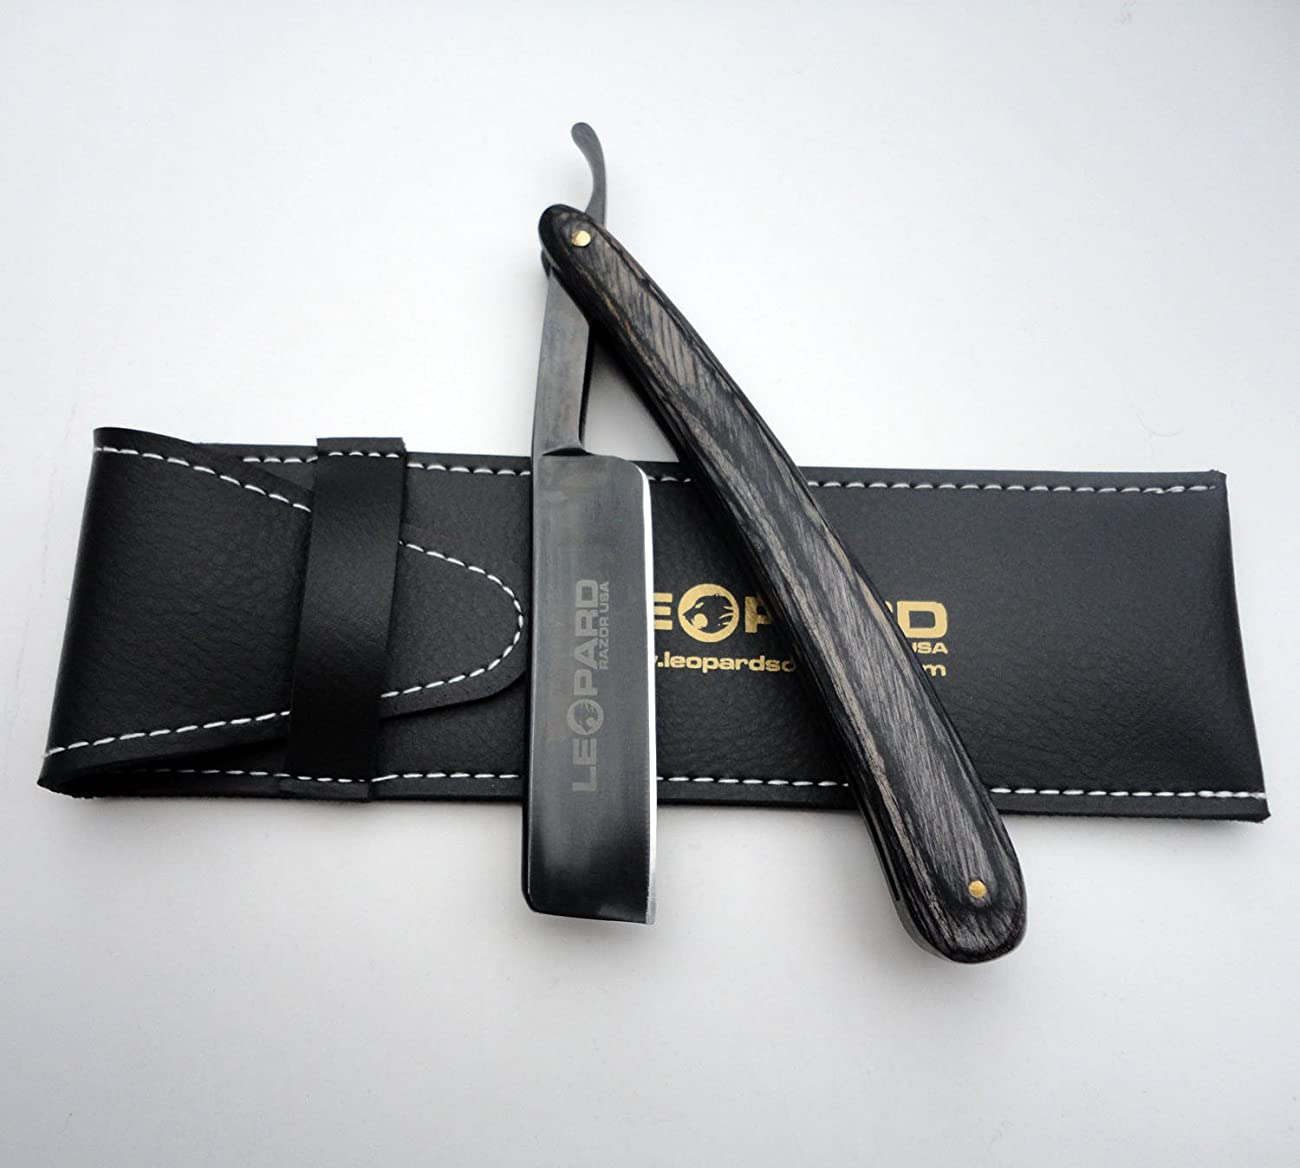 Shave Ready Vintage Straight Cut Throat Shaving Razor Carbon Steel Open Razor New Handmade Black Wood Handle Black Blade R-606 4